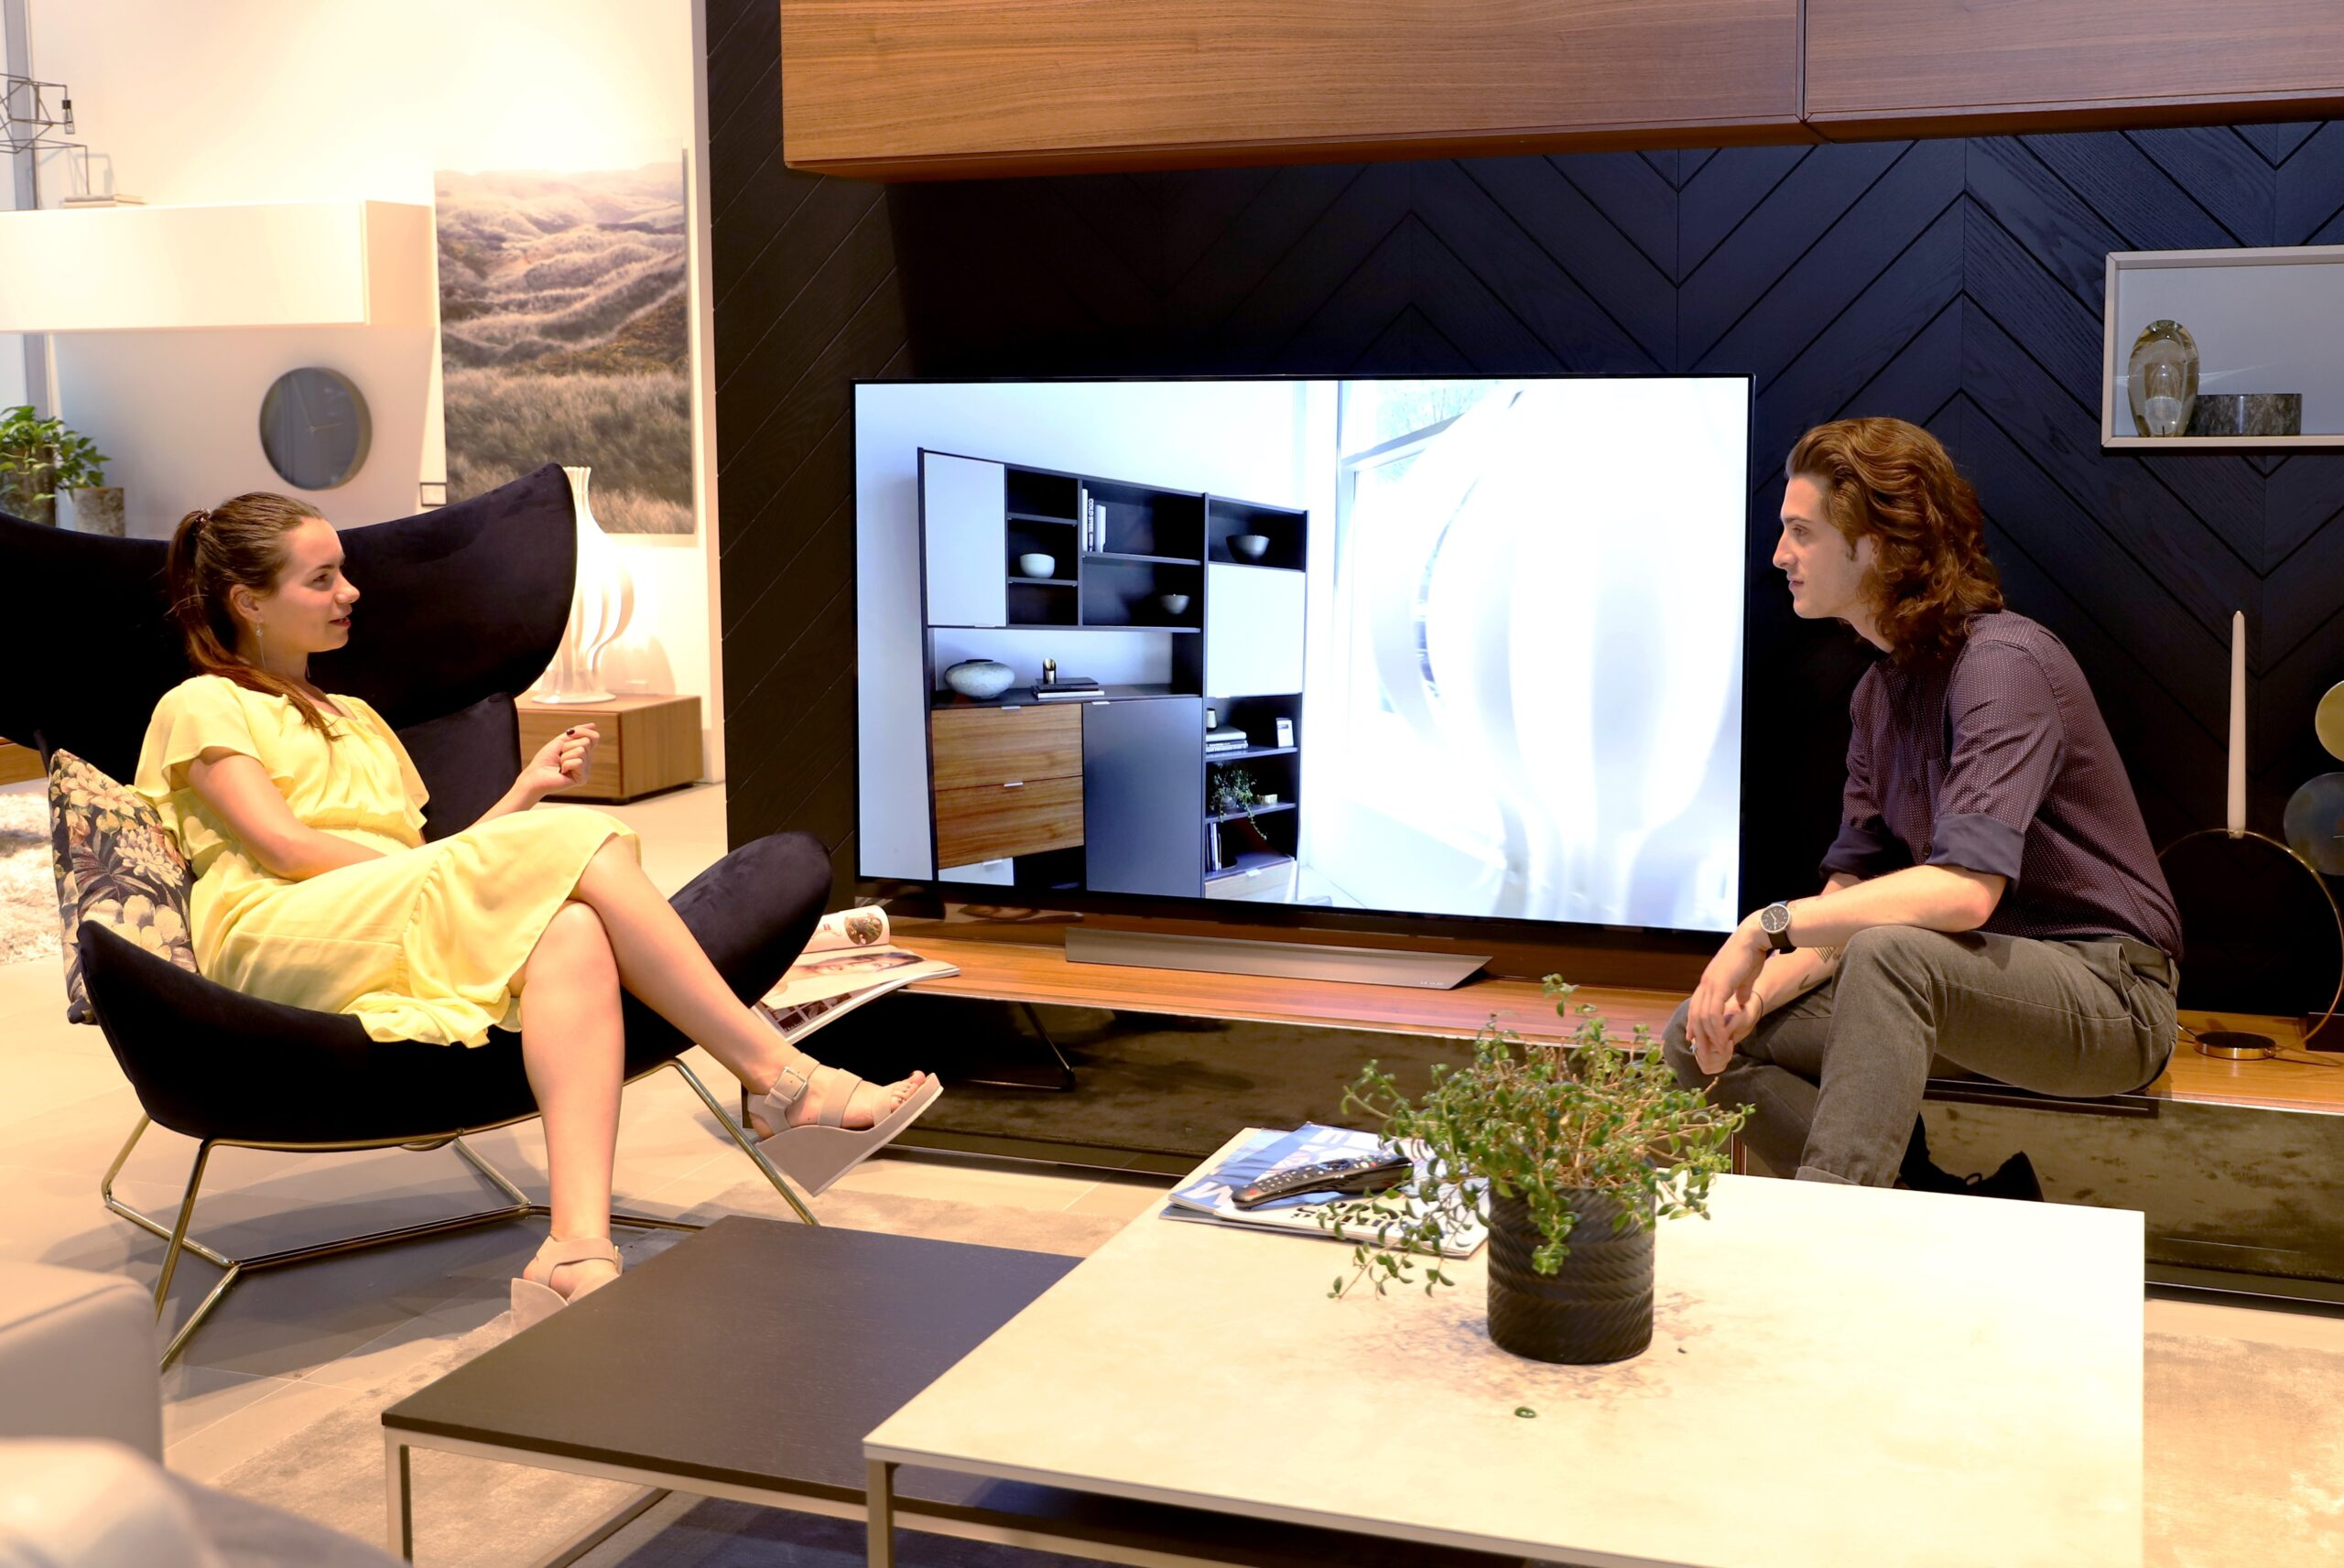 A man and a woman sit in the sample AI-enabled living room discussing LG's AI ThinQ-enabled TVs